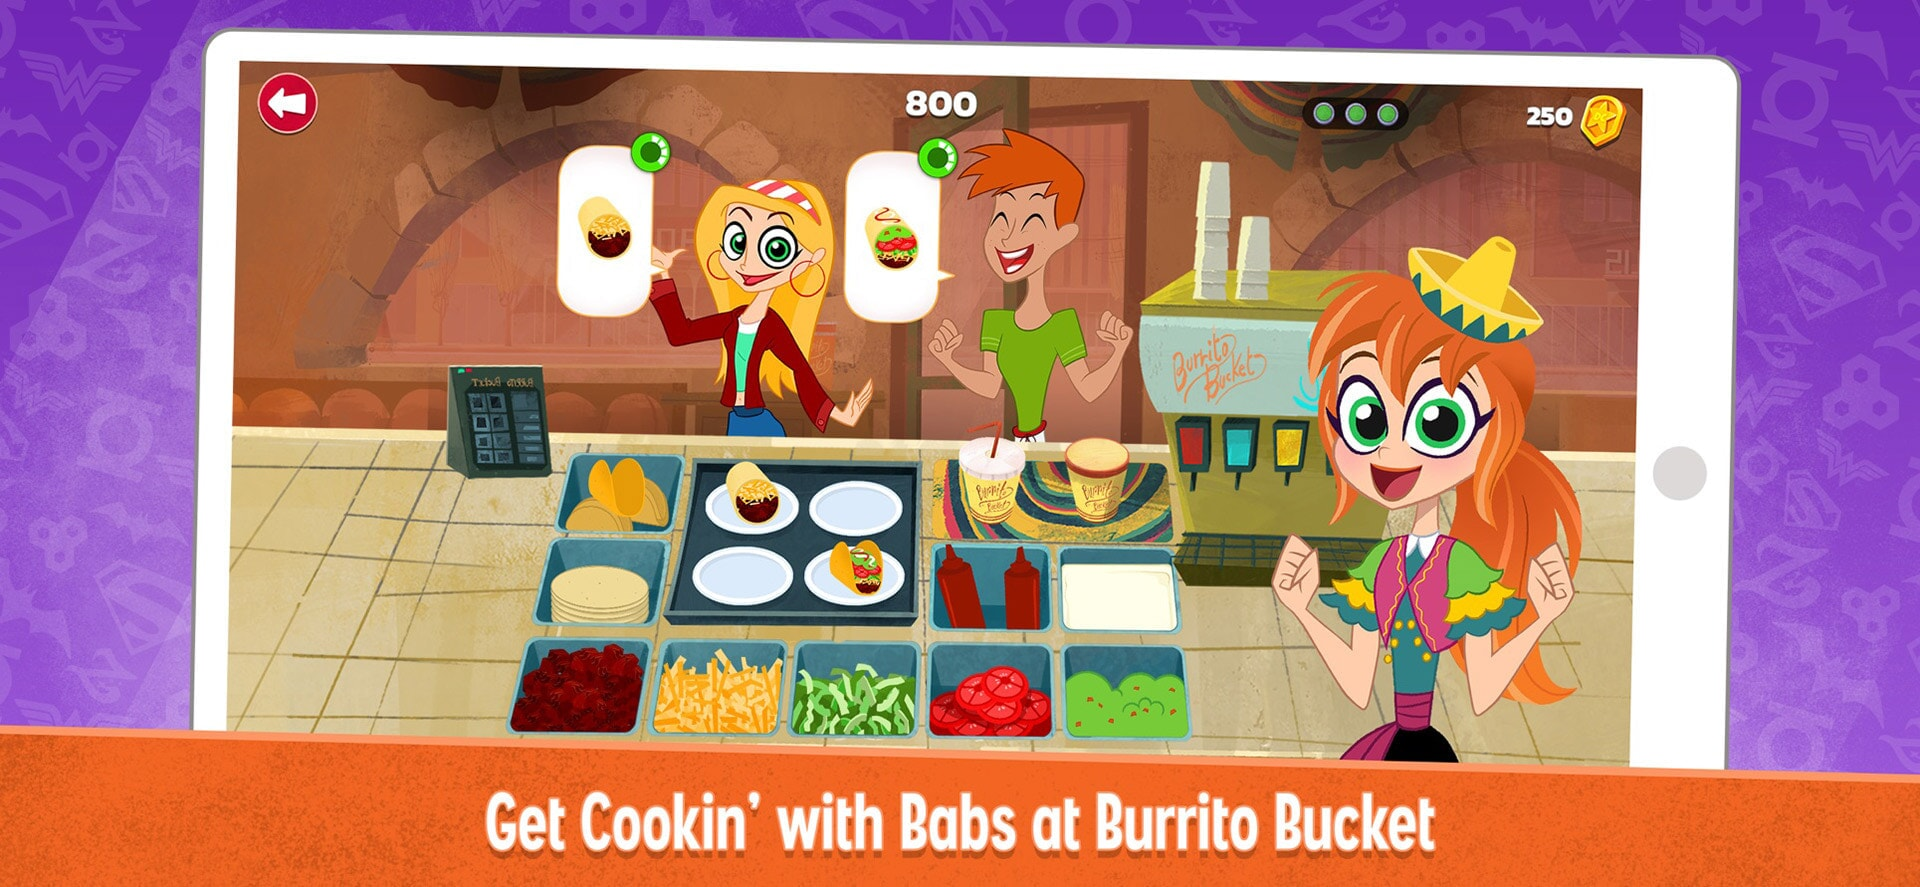 DC Super Hero Girls: Get Cookin' With Bobs At Burrito Bucket